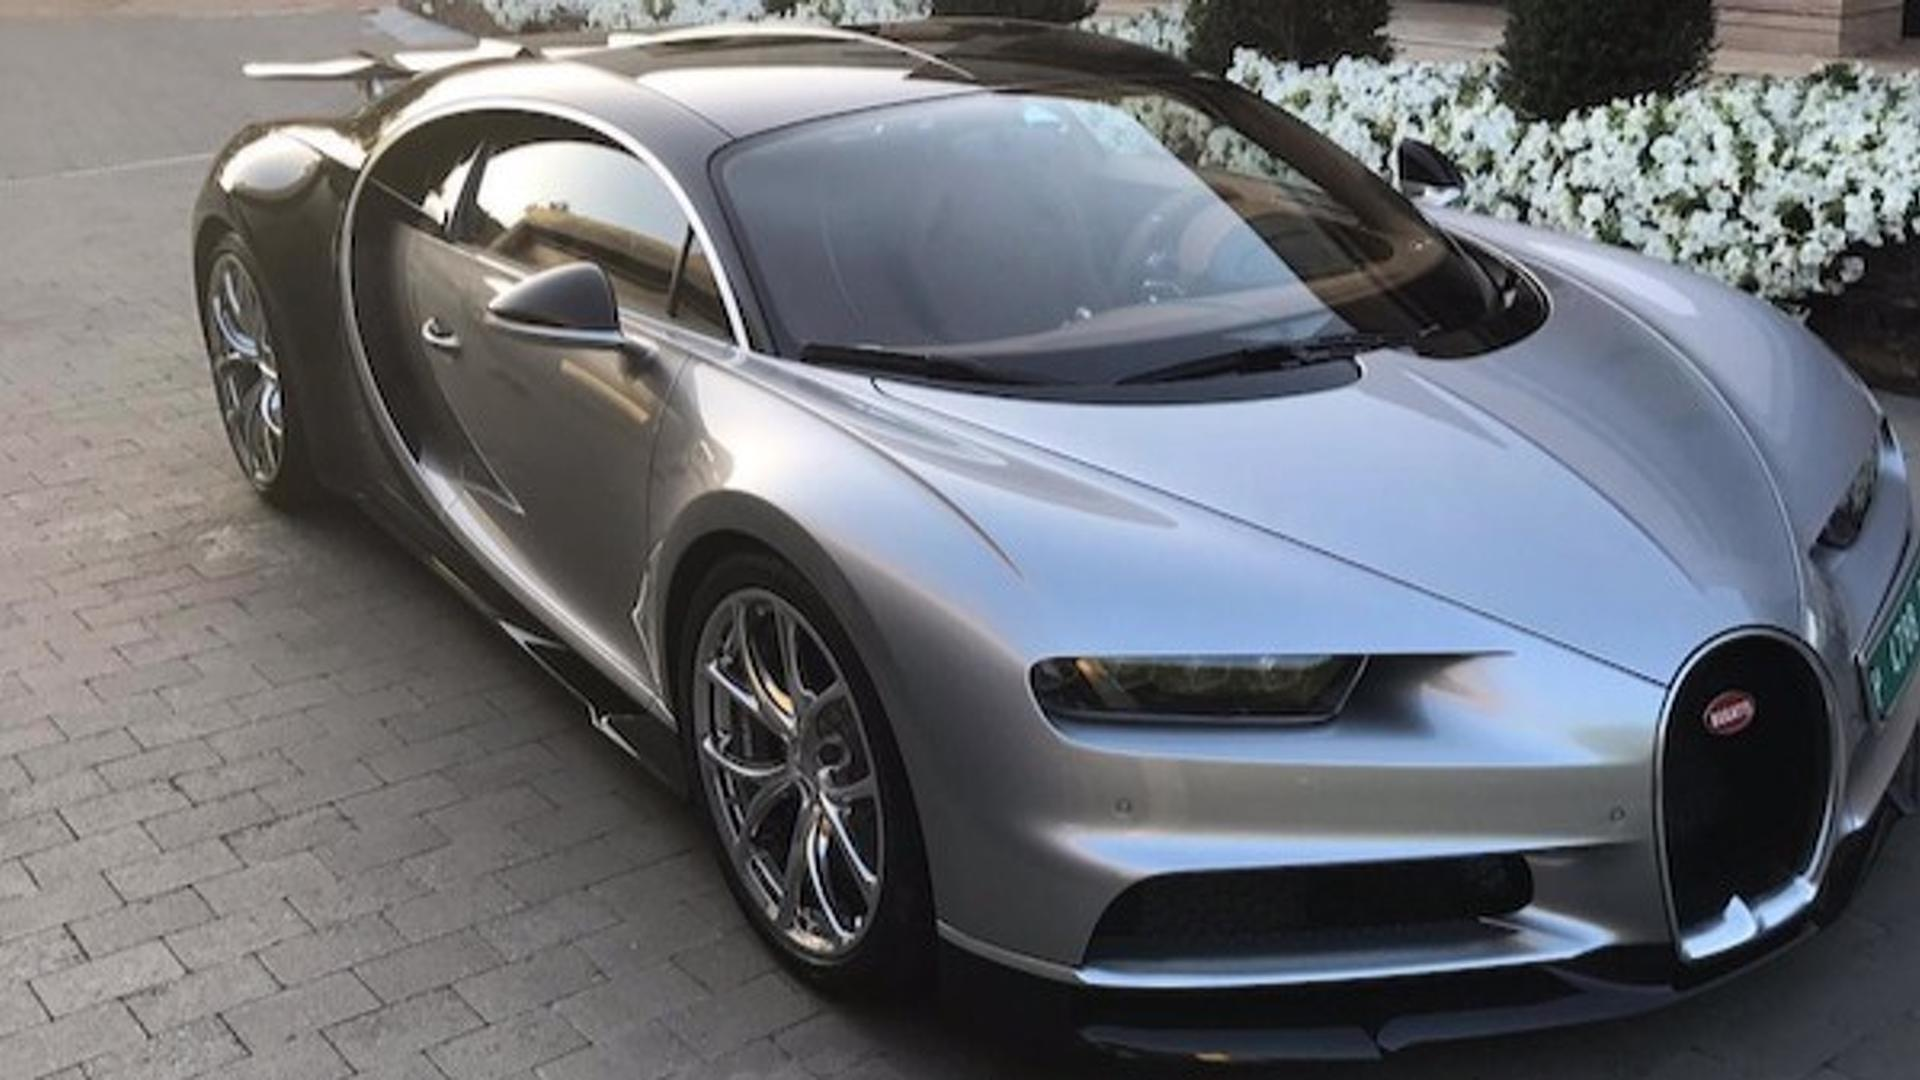 The Best New Cars By Bugatti Aston Martin And Ferrari In 2018: Cristiano Ronaldo Spotted Driving His New Bugatti Chiron